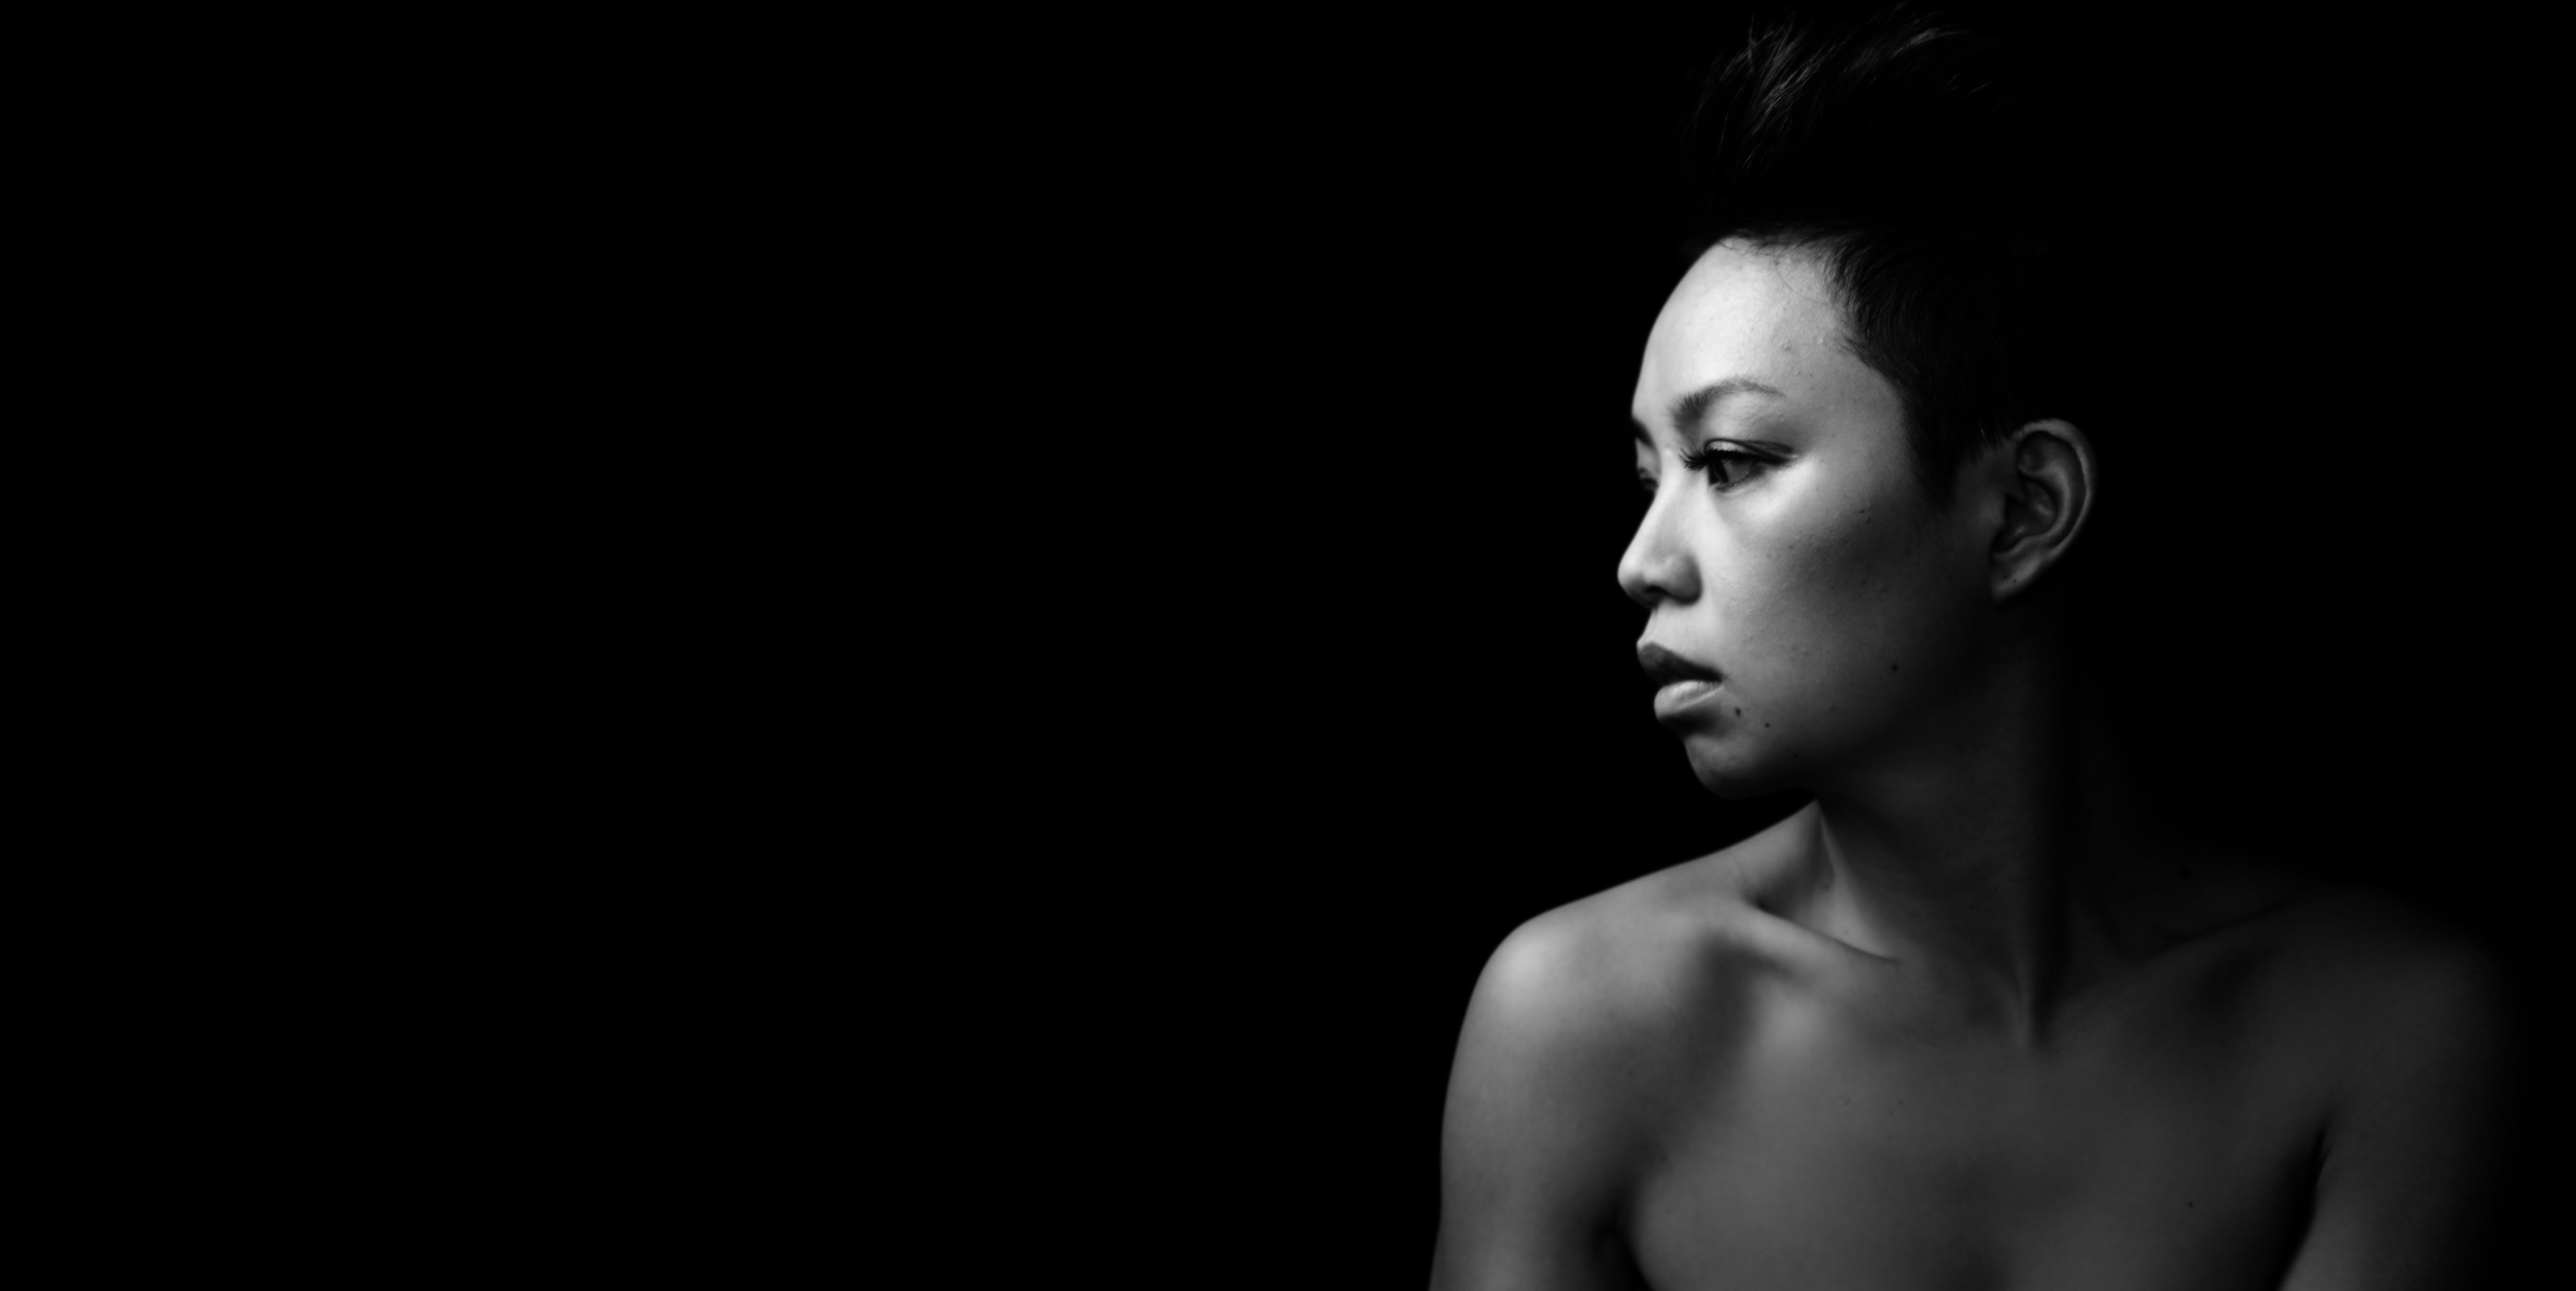 Nude Woman In Grayscale Photography